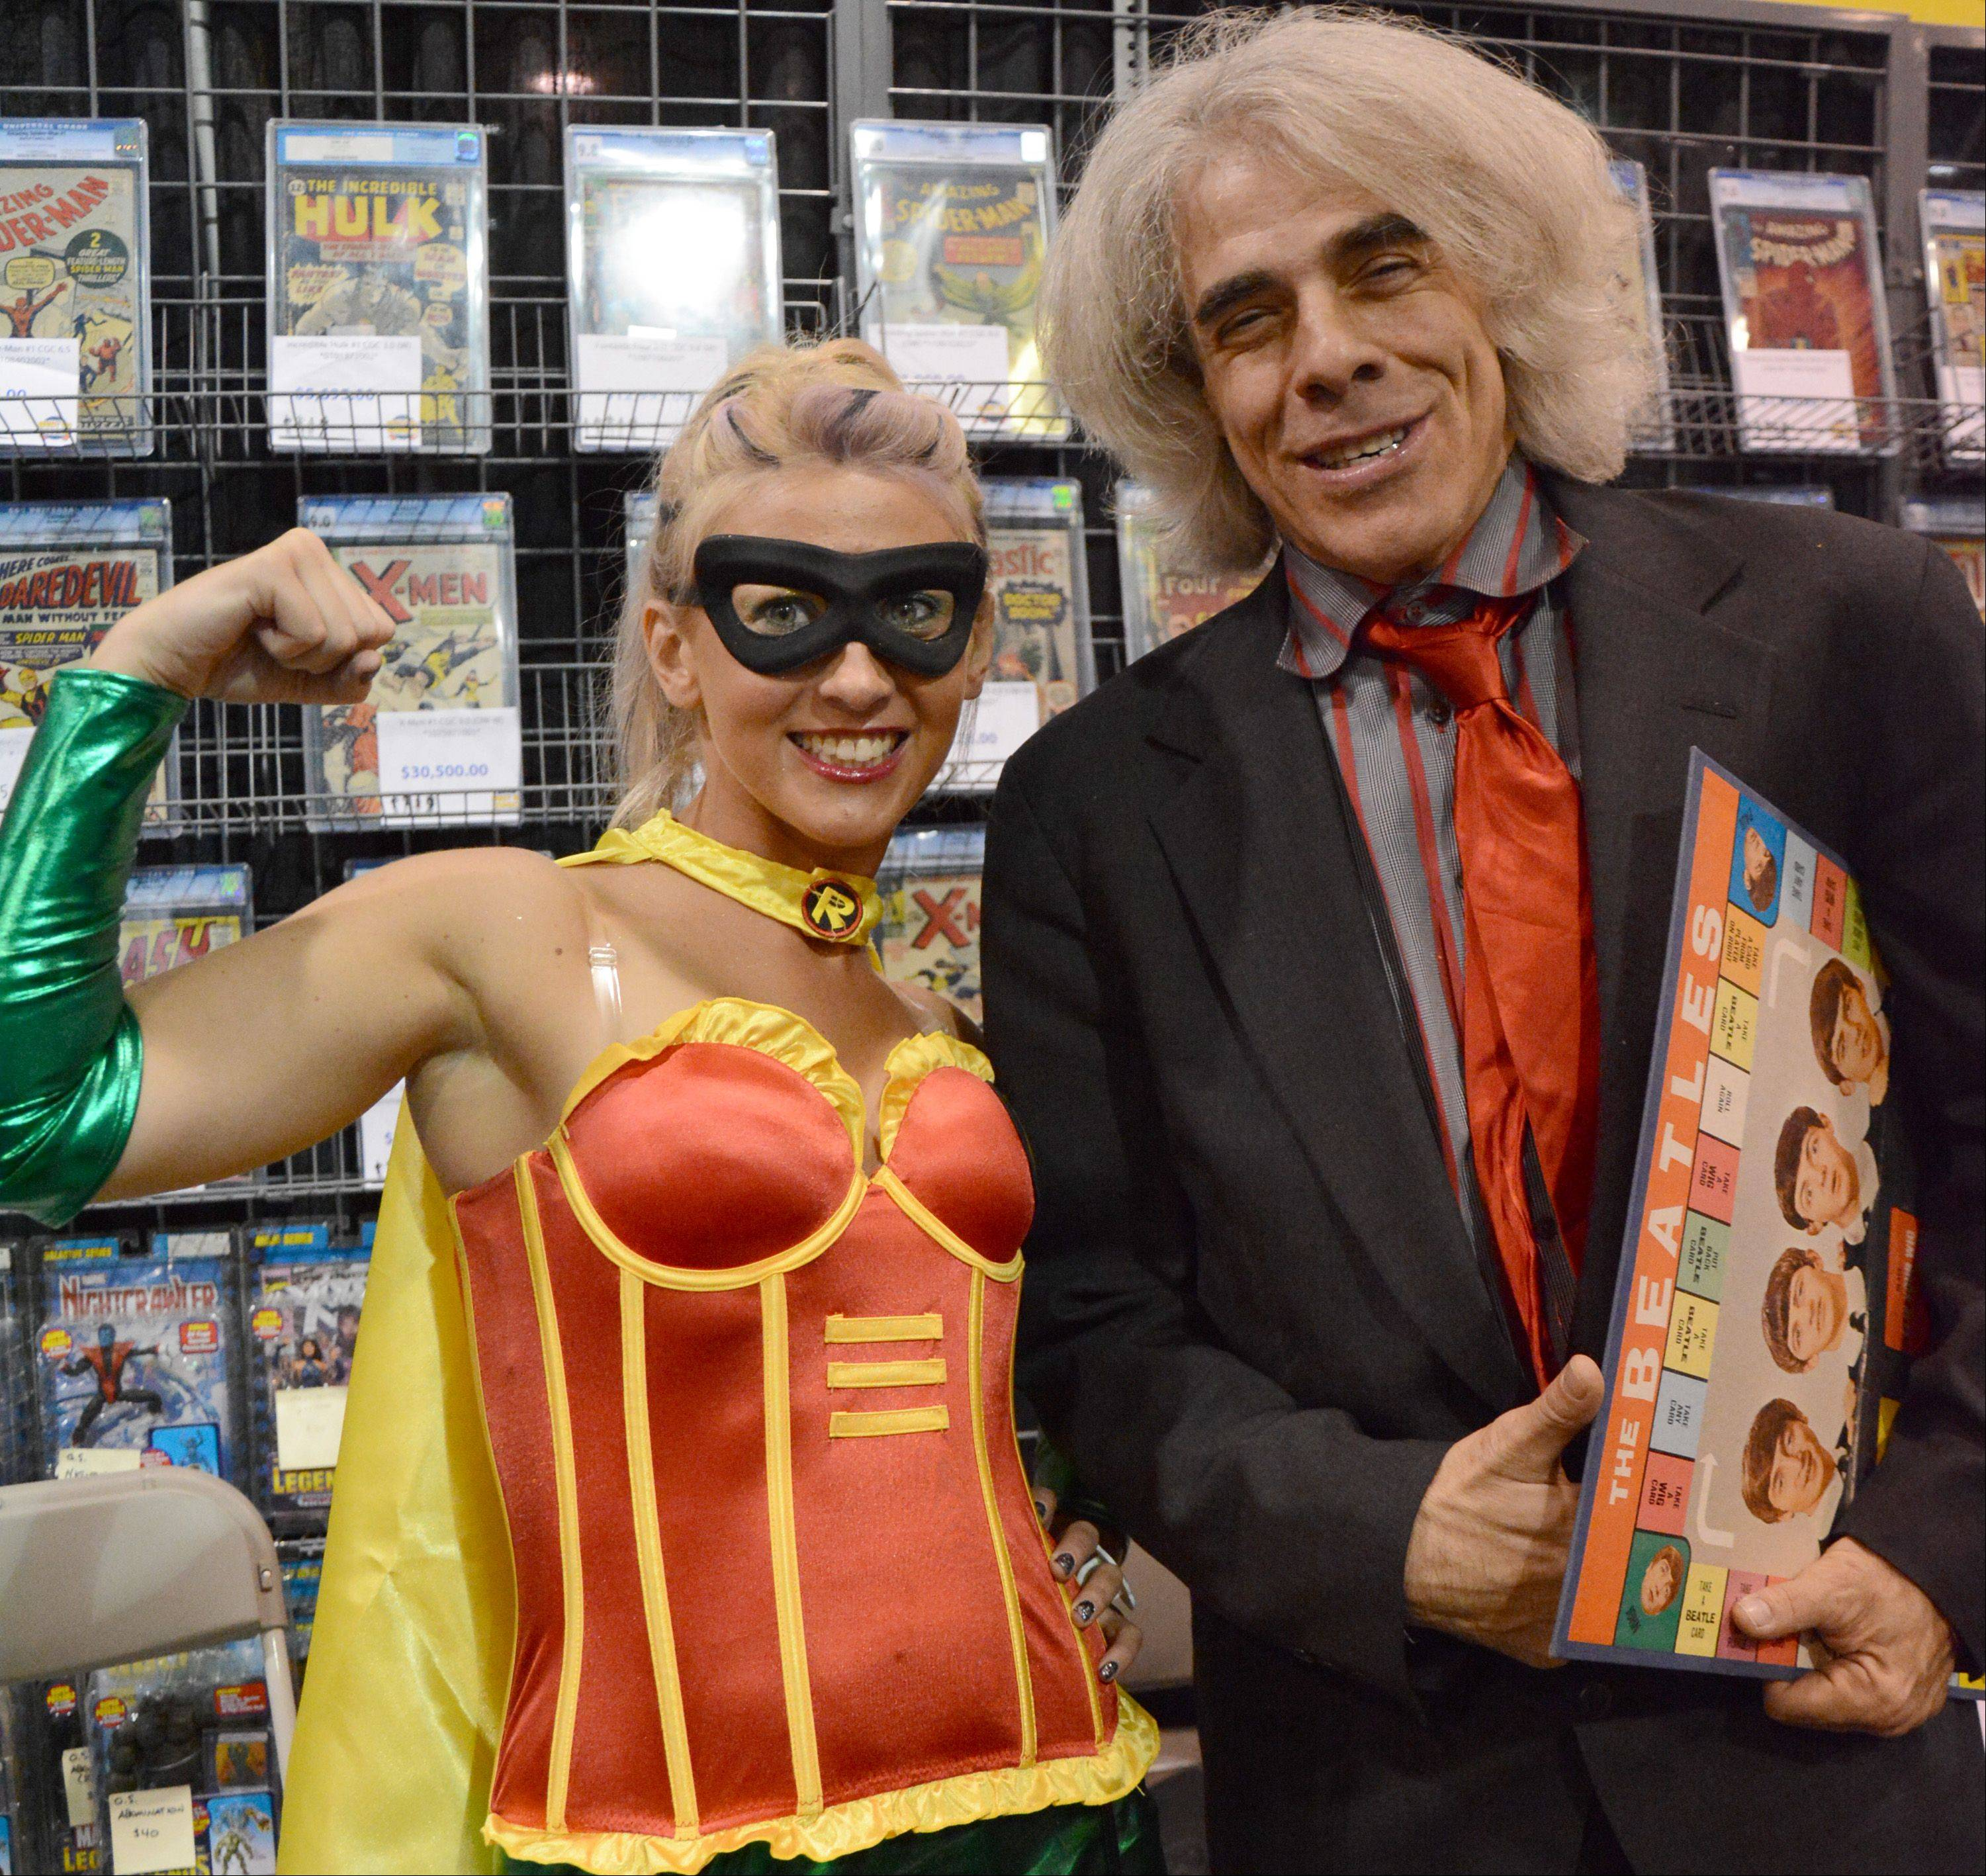 From left, Alicia Ziller, of Highland, Ind., and Mike Carbondaro, of Tonawanda, N.Y., pose for a photo Sunday at Wizard World Chicago in Rosemont.